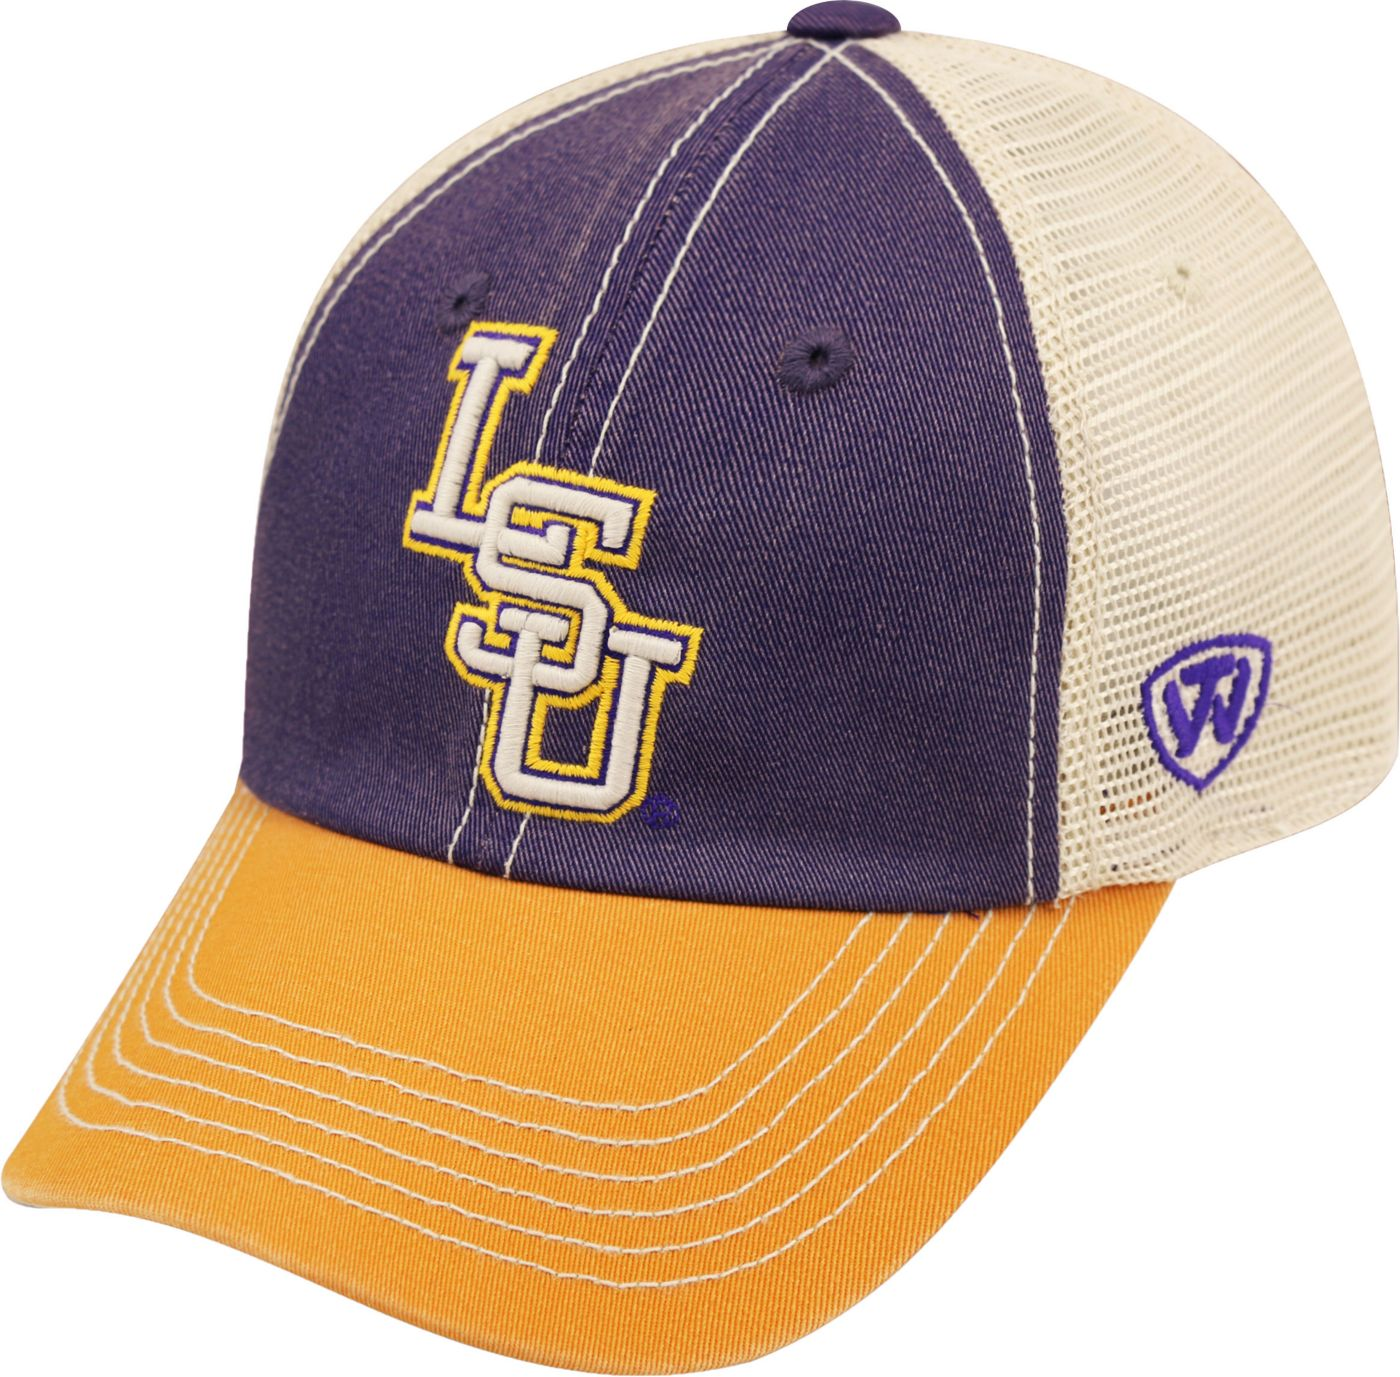 Top of the World Men's LSU Tigers Purple/White/Gold Off Road Adjustable Hat